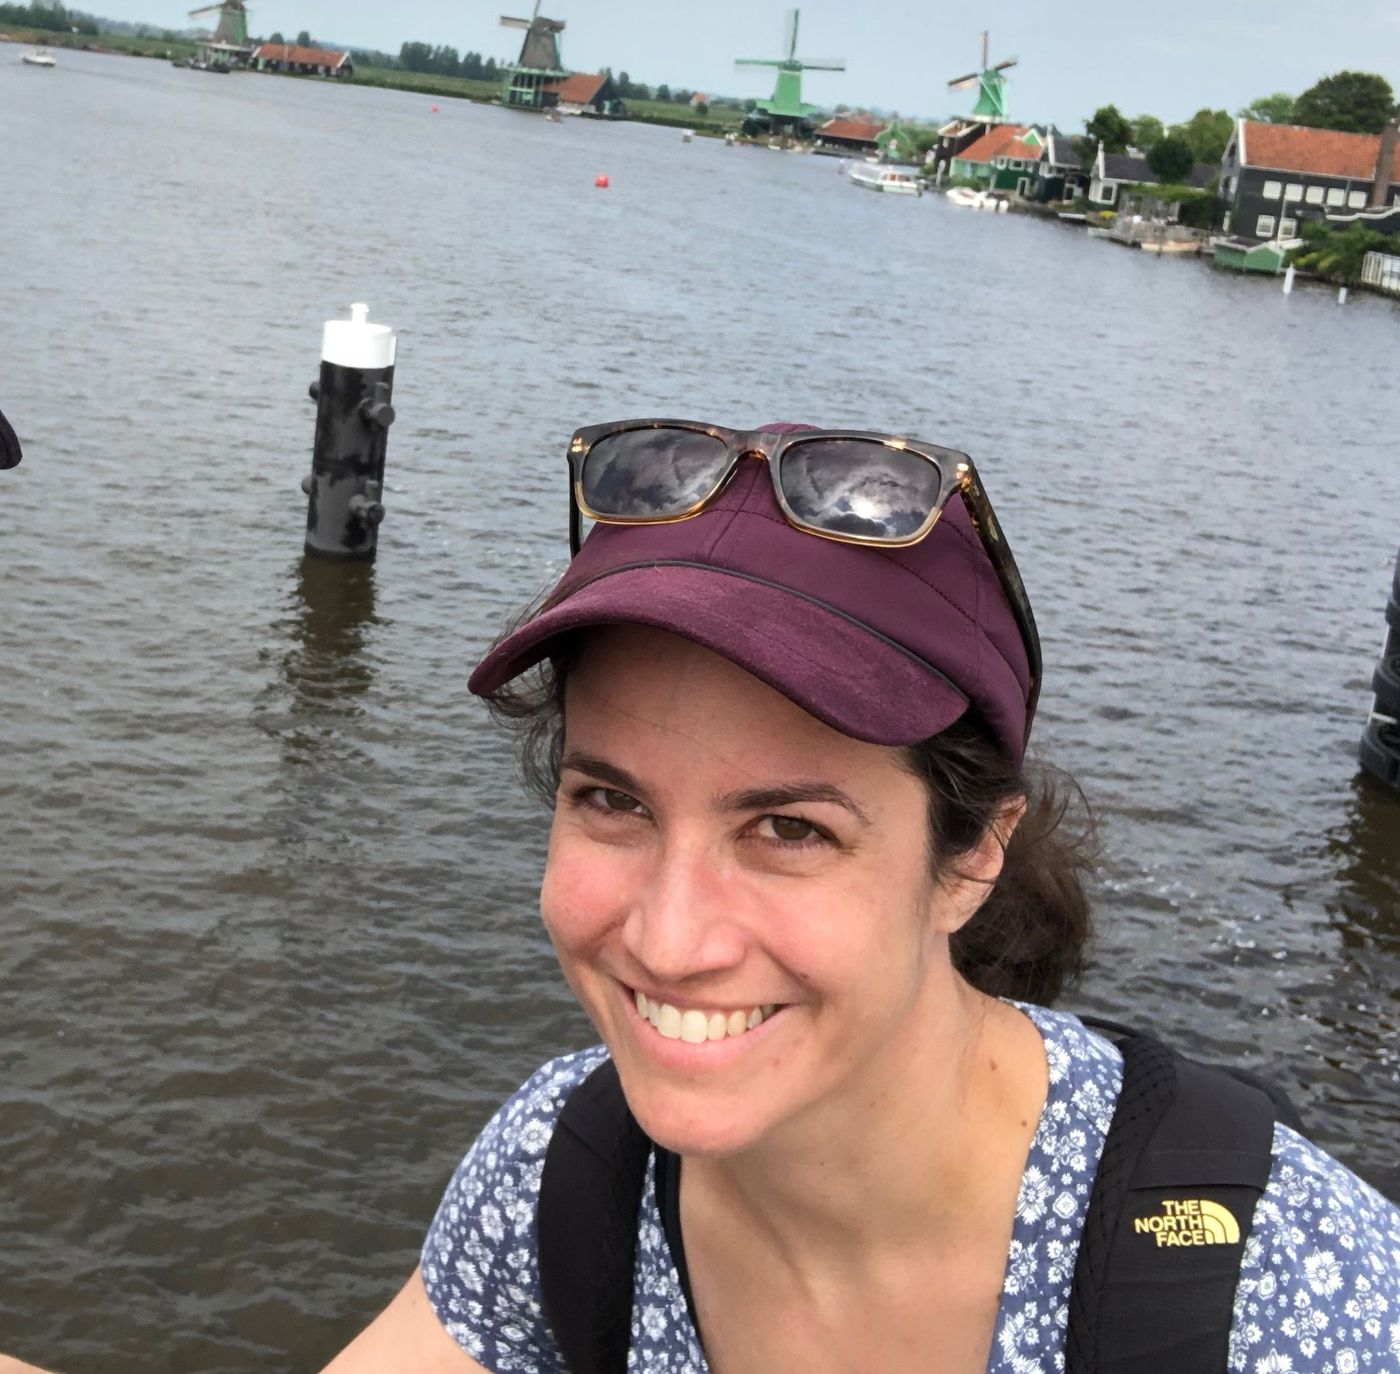 Catherine Price, 39, of Philadelphia, used a prescription from her doctor to buy insulin while on a business trip in Amsterdam in June 2018.